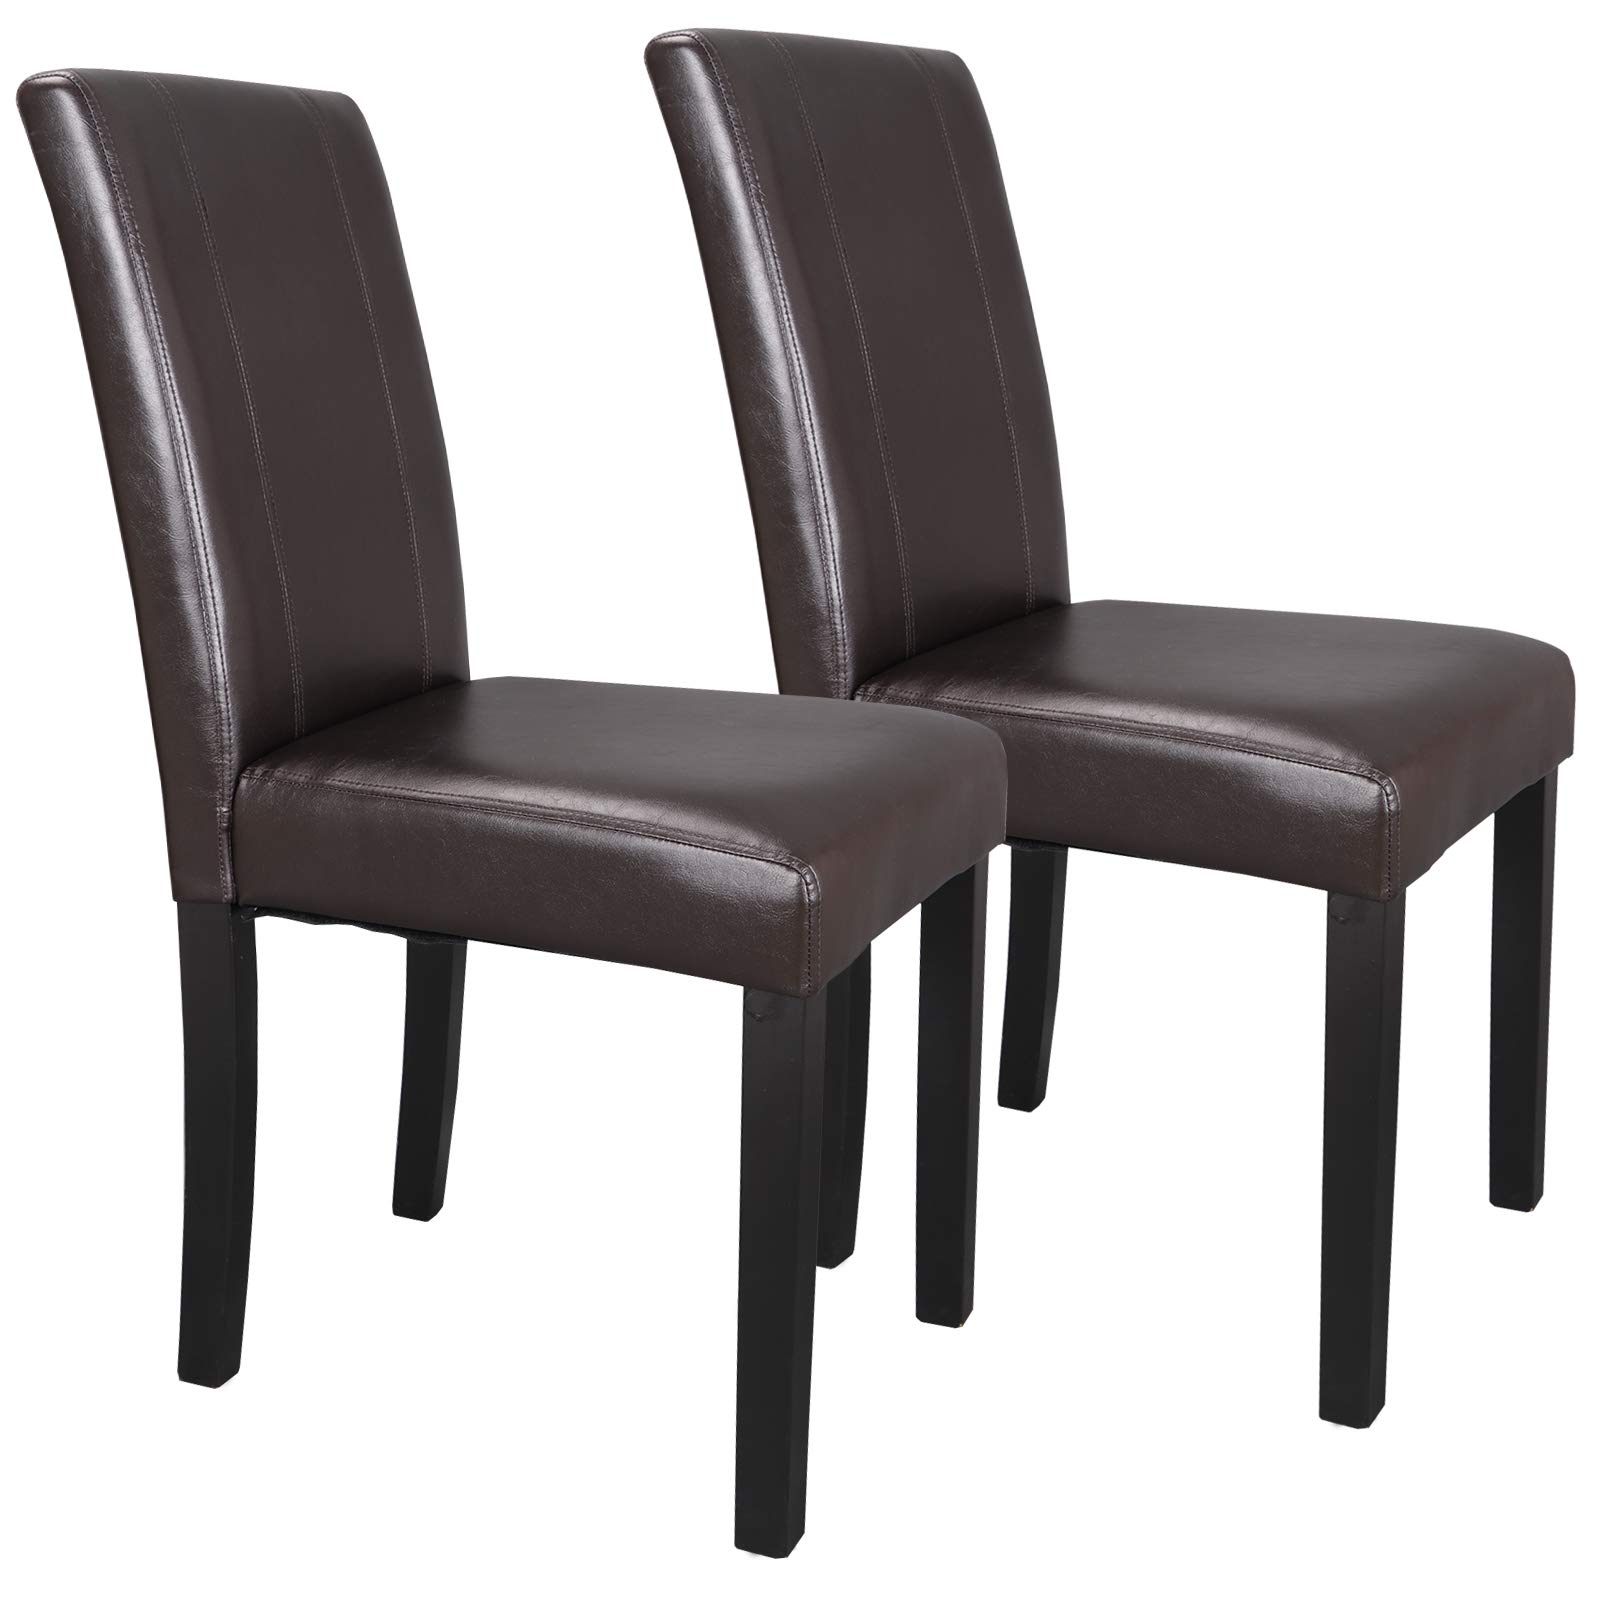 SUPER DEAL Solid Wood Leatherette Padded Parson Dining Chair, Waterproof & Oilproof Stretch Kitchen Dining Room Chairs, Espresso (2) by SUPER DEAL